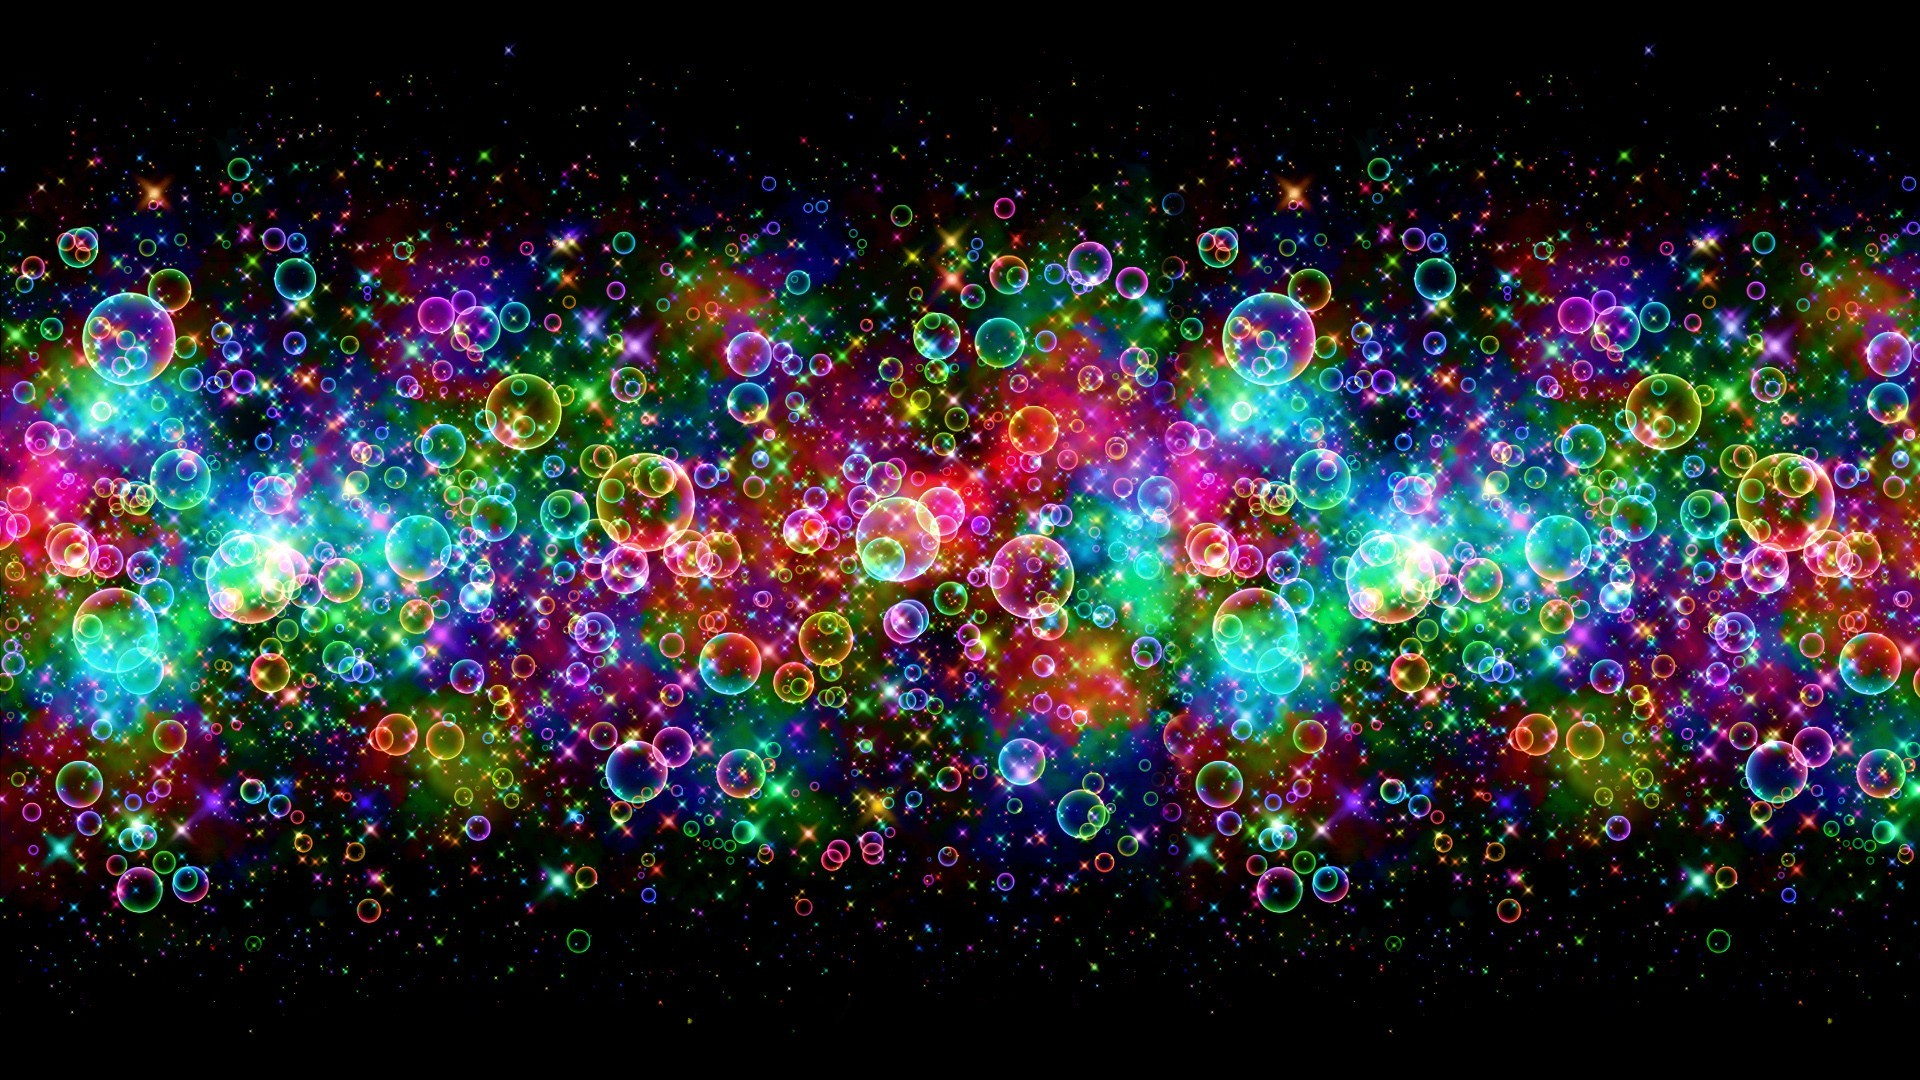 1920x1080 Colorful-HD-Abstract-Wallpaper